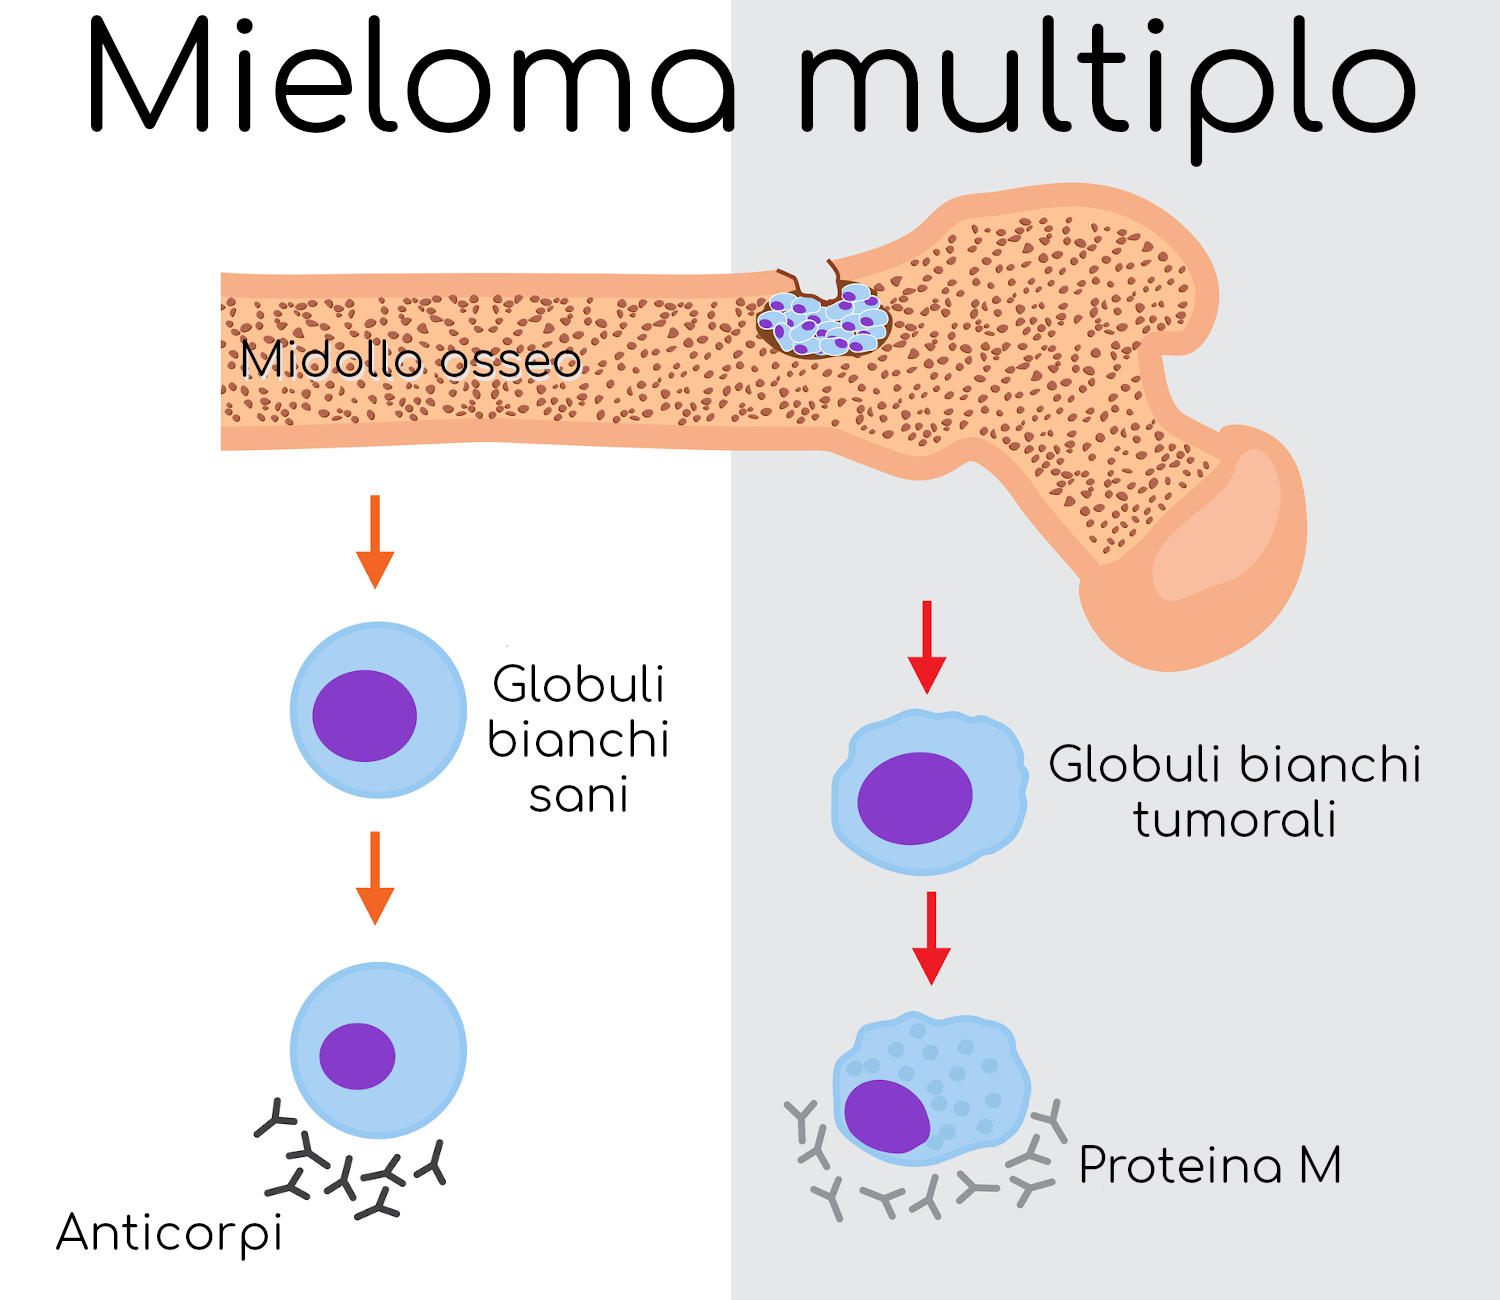 Differenza tra cellule sane e cellule tumorali (mieloma multiplo)